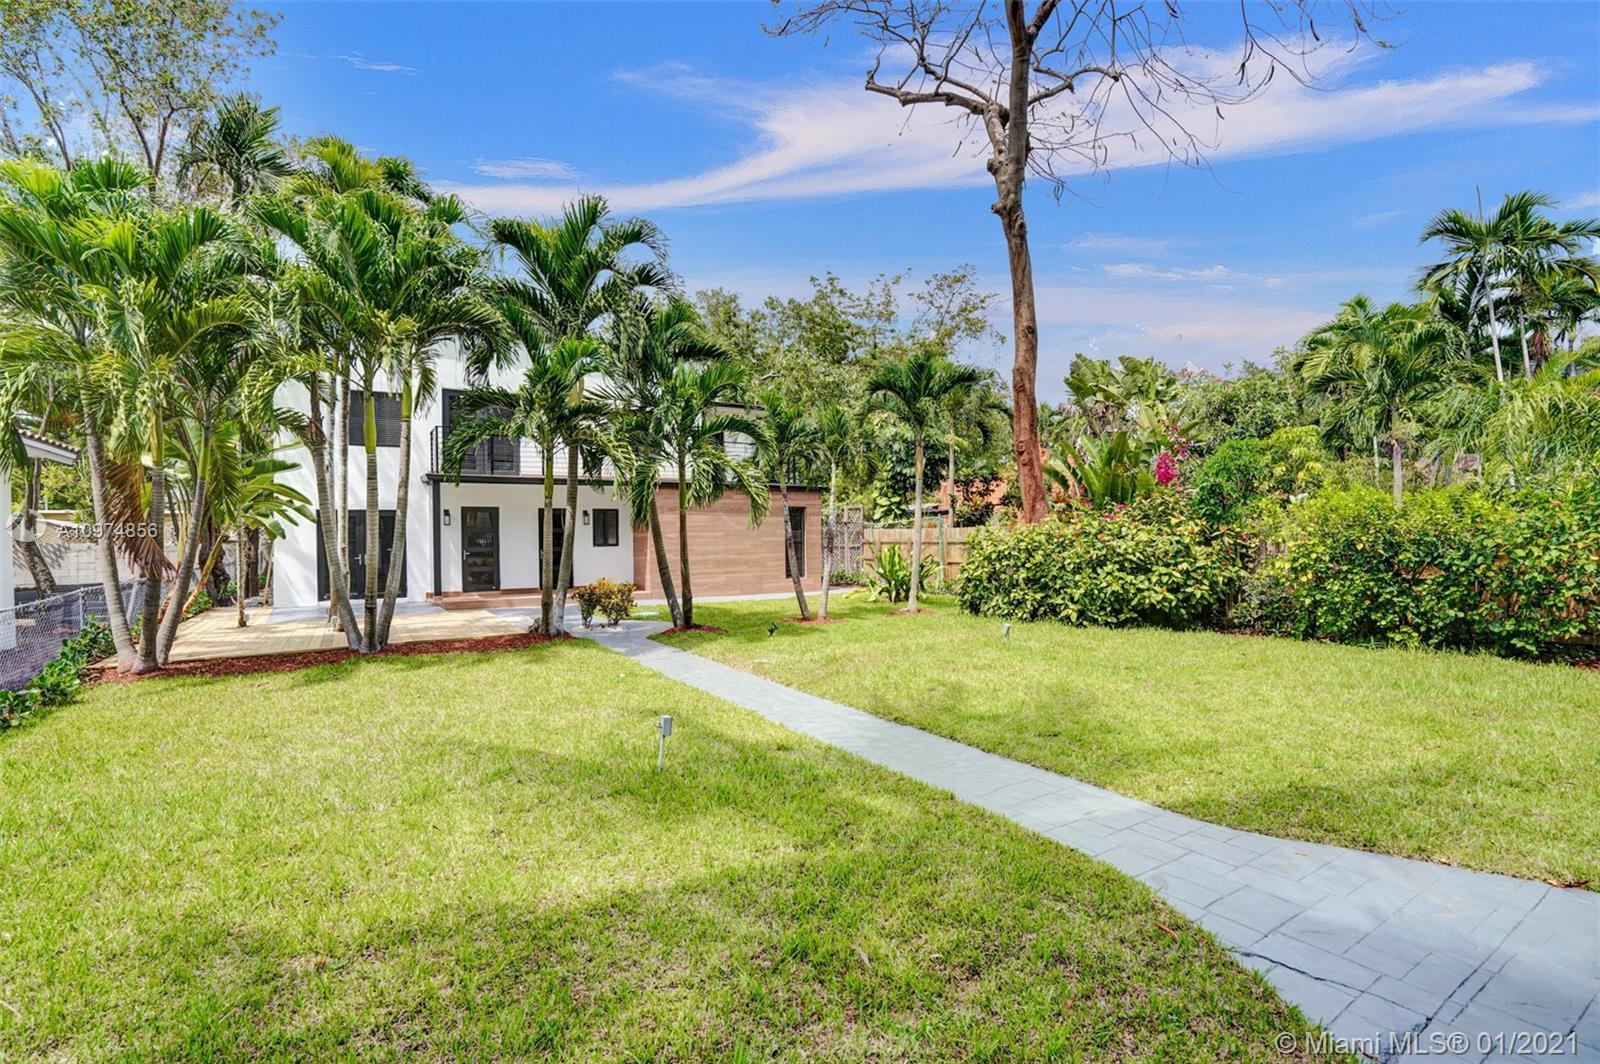 Investor opportunity or ideal 2-family residence. Tropical-modern duplex set on a gated lot in S. Co